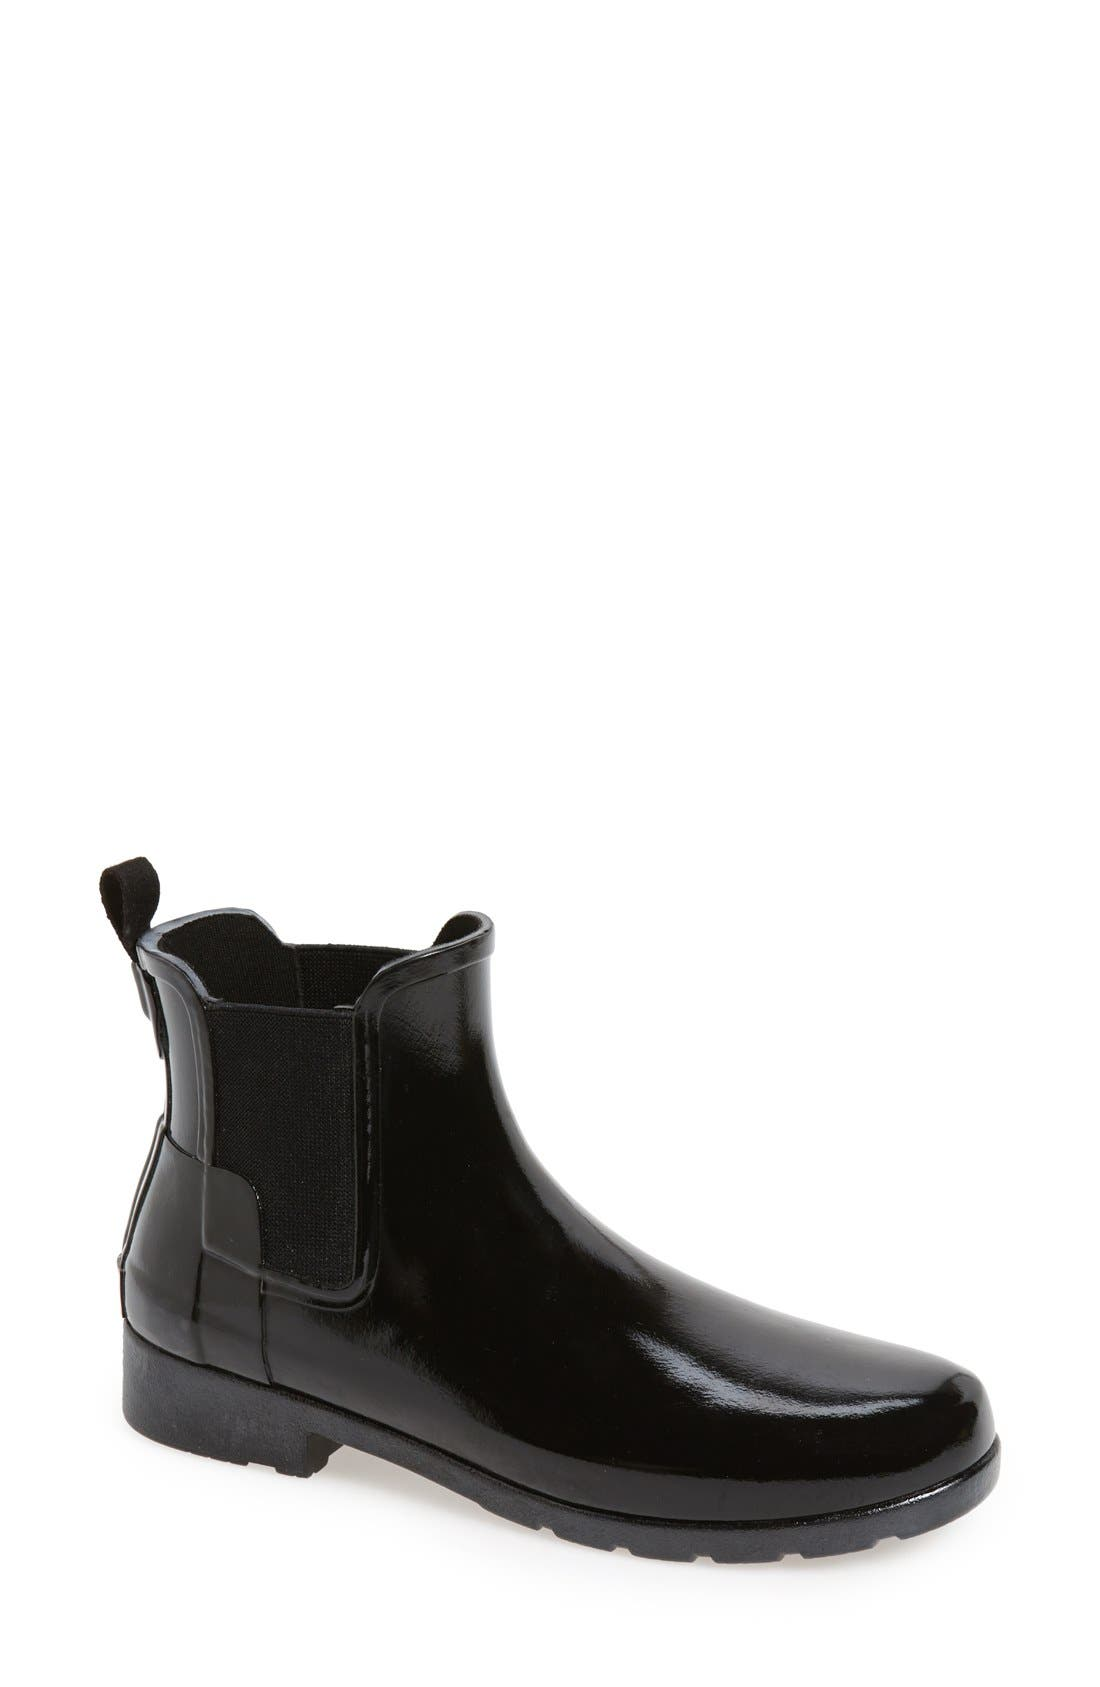 HUNTER 'Original Refined' Chelsea Rain Boot